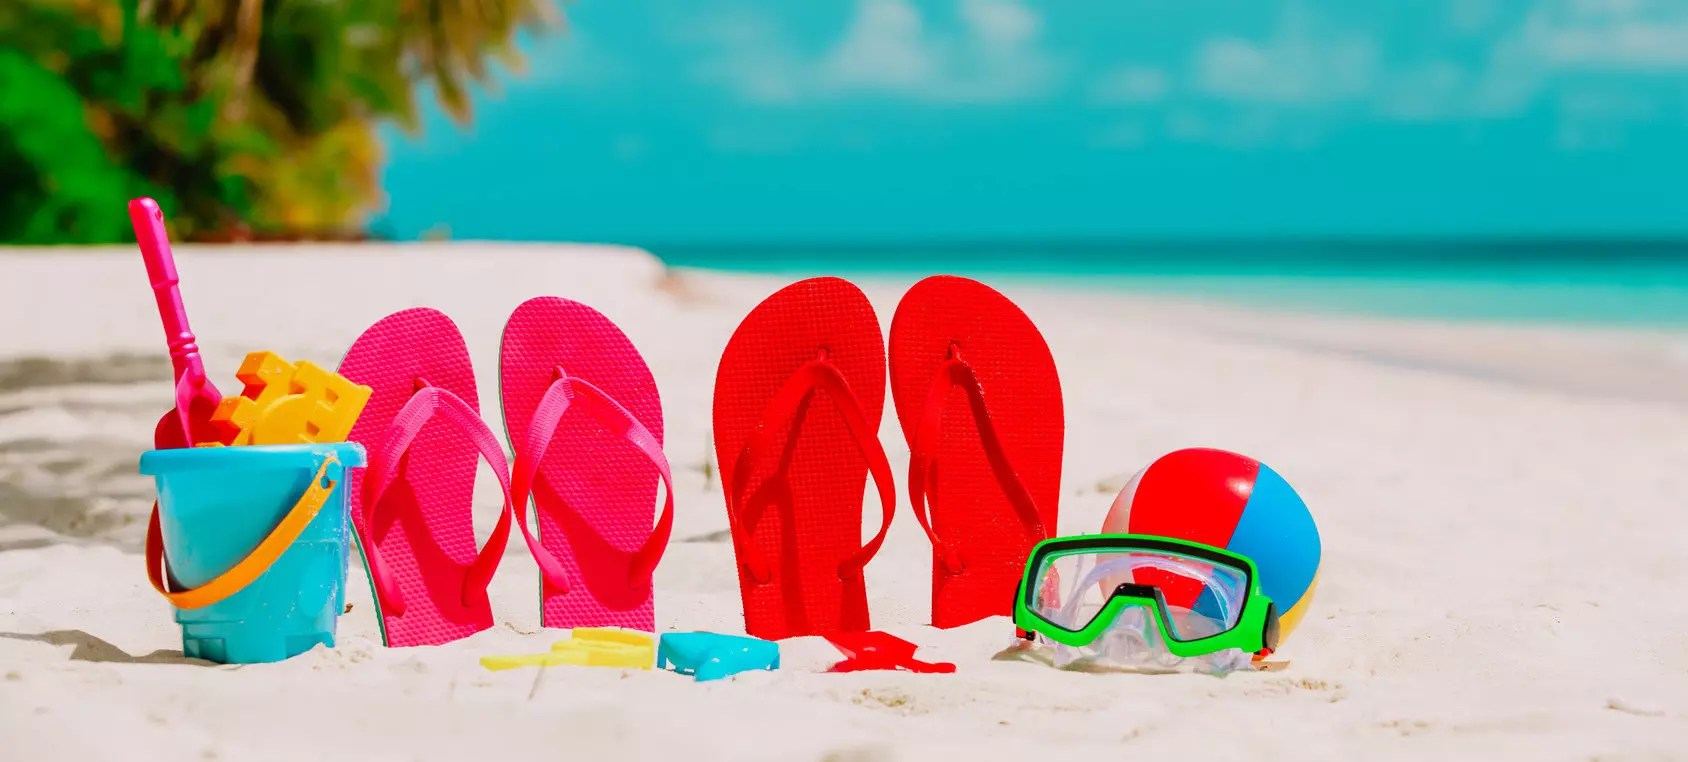 Travel Insurance/Holiday Insurance in English for Expats in Spain. GB Insurance Services Madrid